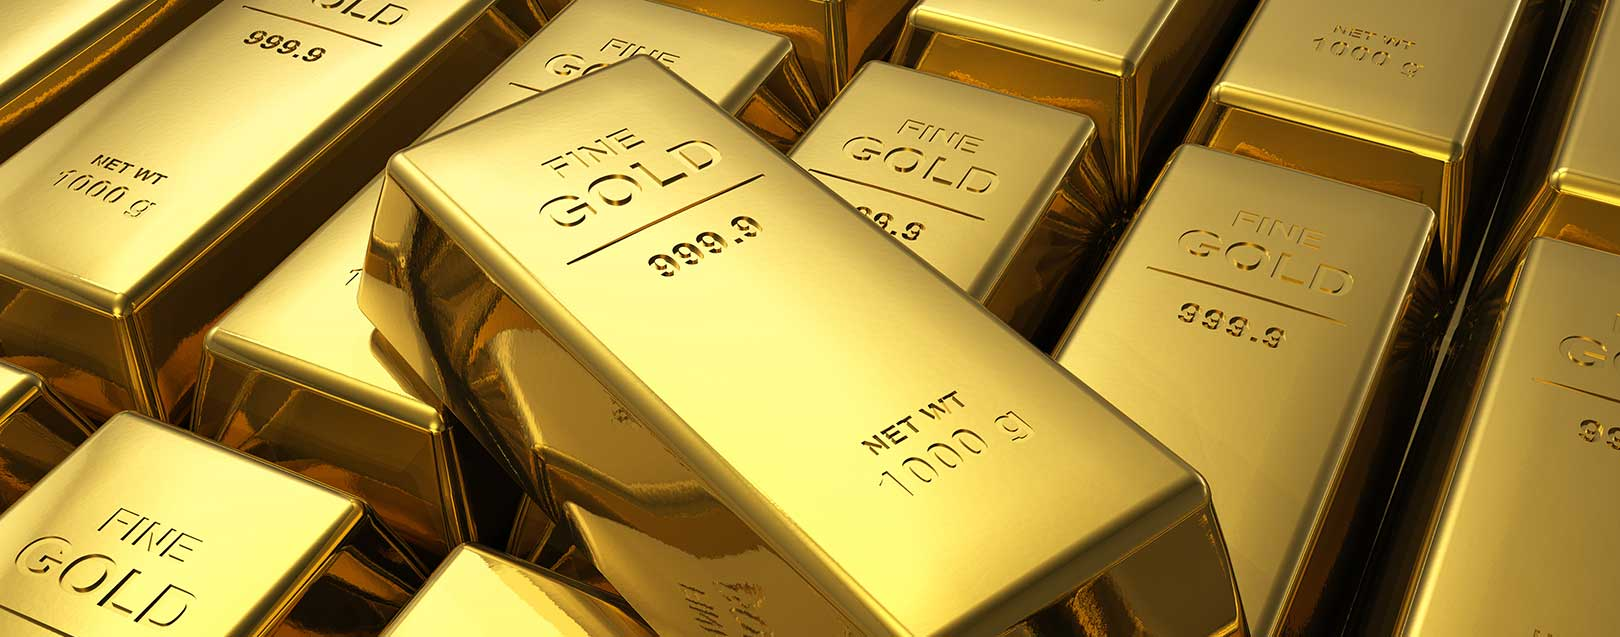 Global gold demand declines 18% during Q1 of 2017: WGC